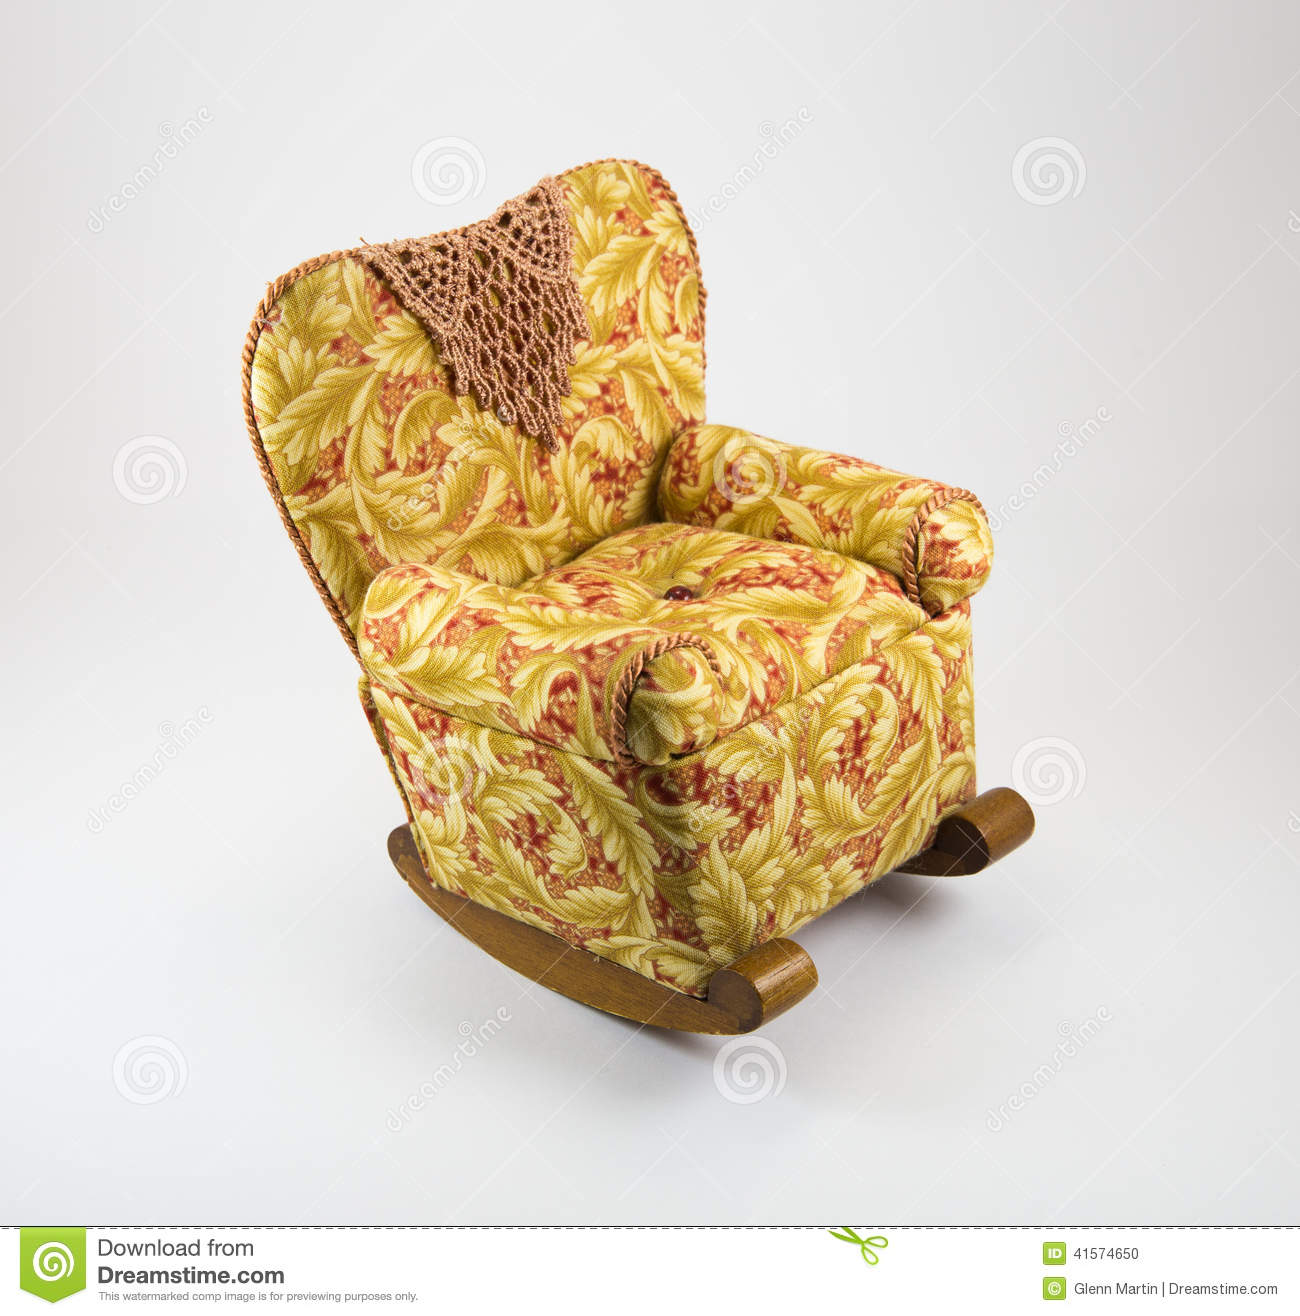 Doll House Rocking Chair Stock Photo Image Of 401k Baby